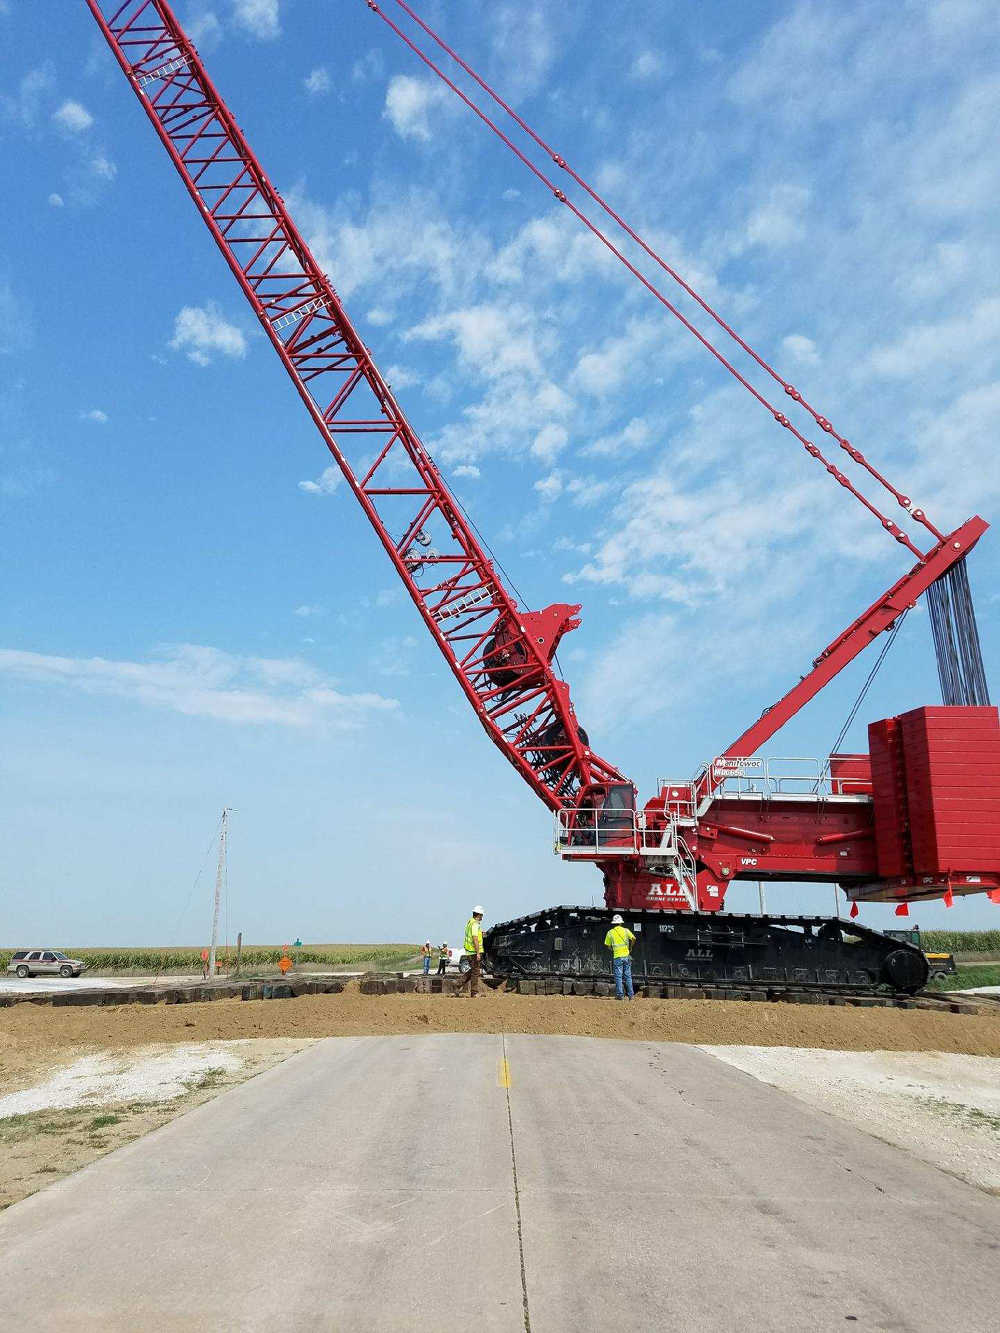 The All Family of Companies has strengthened its fleet by adding two versatile and popular Manitowoc MLC650 crawler cranes.